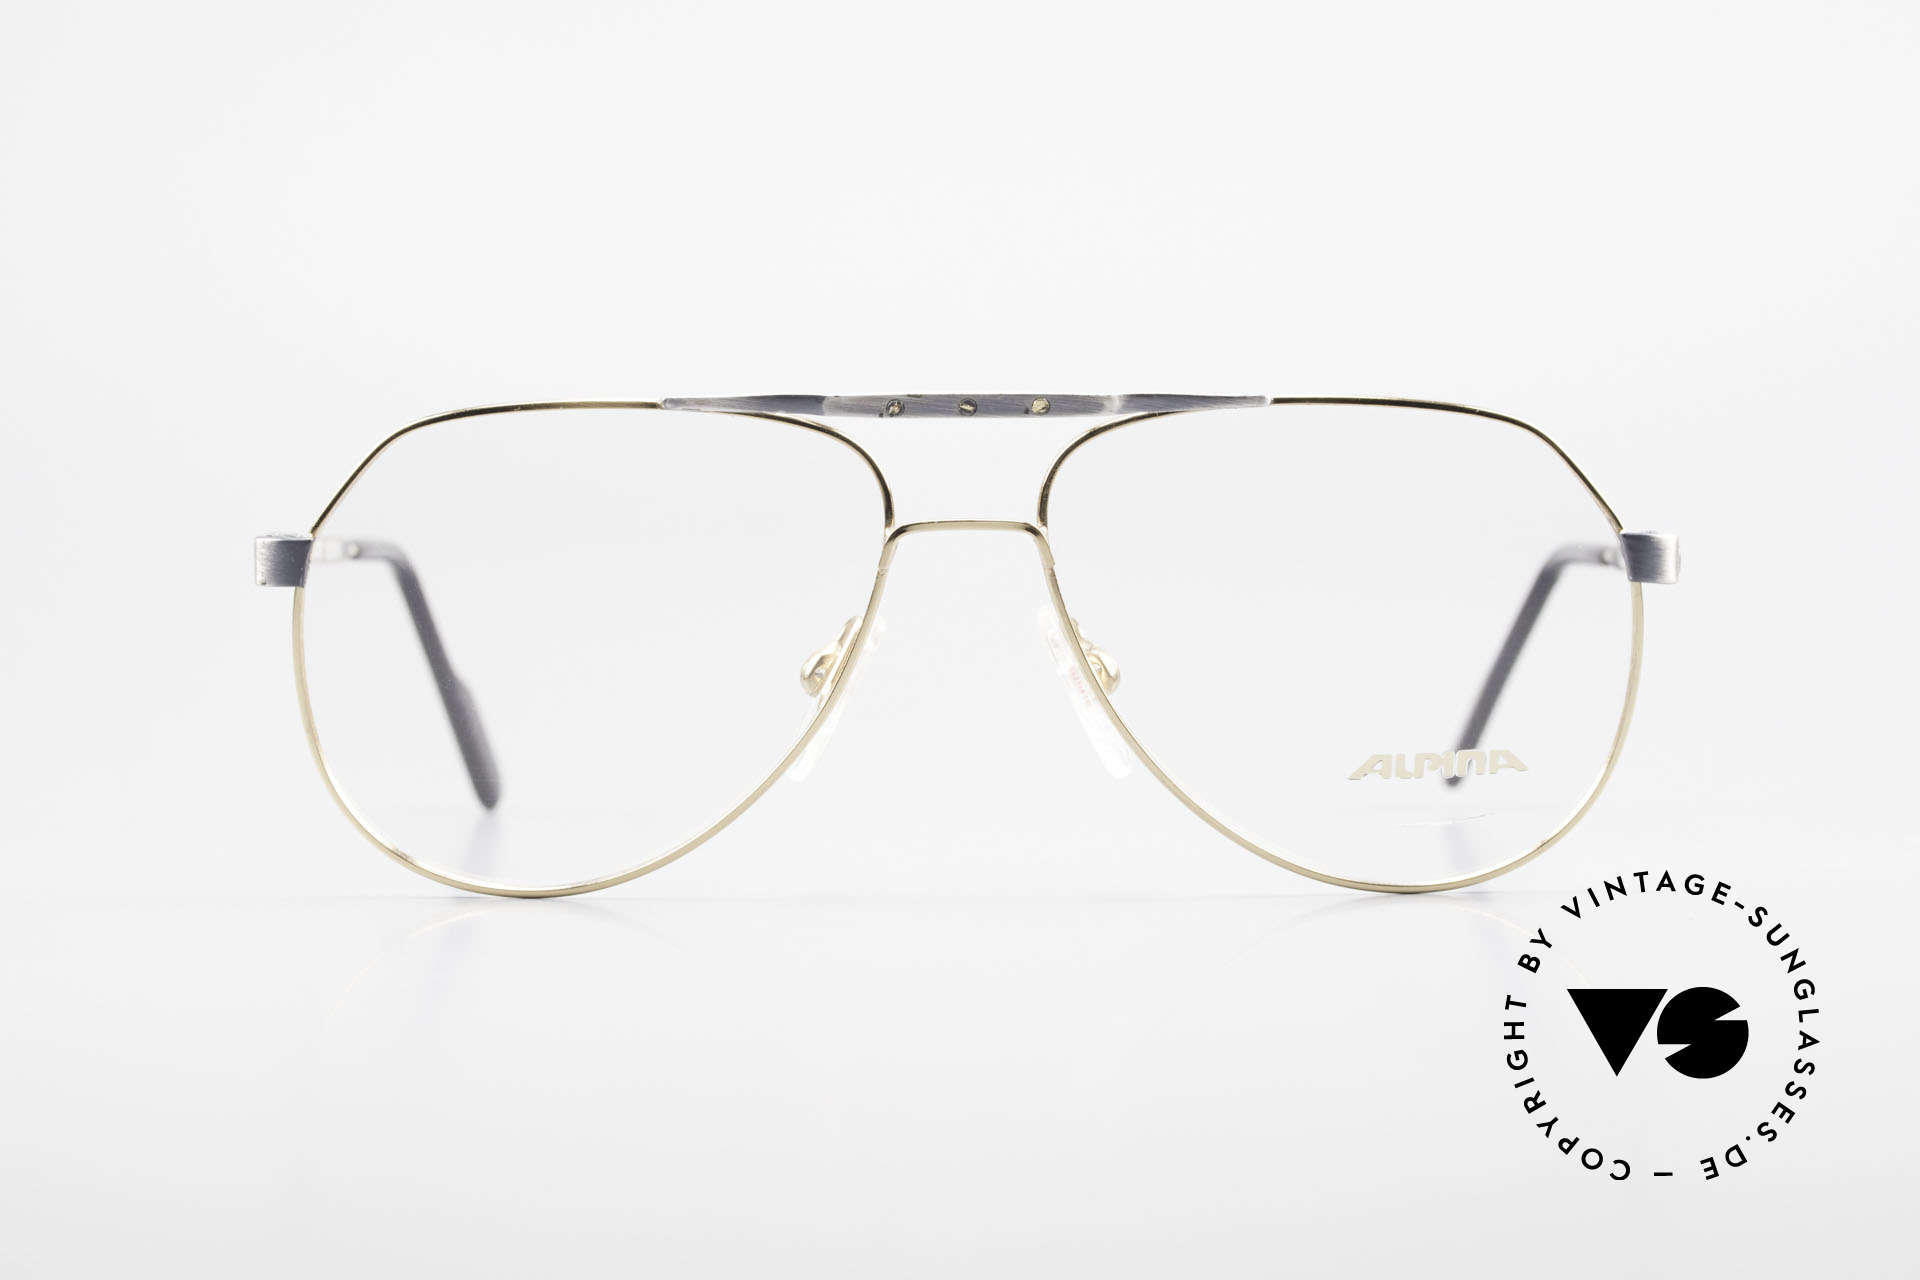 Alpina M1F770 Vintage Glasses Aviator Style, 90's aviator specs, brushed metal and gold-plated, Made for Men